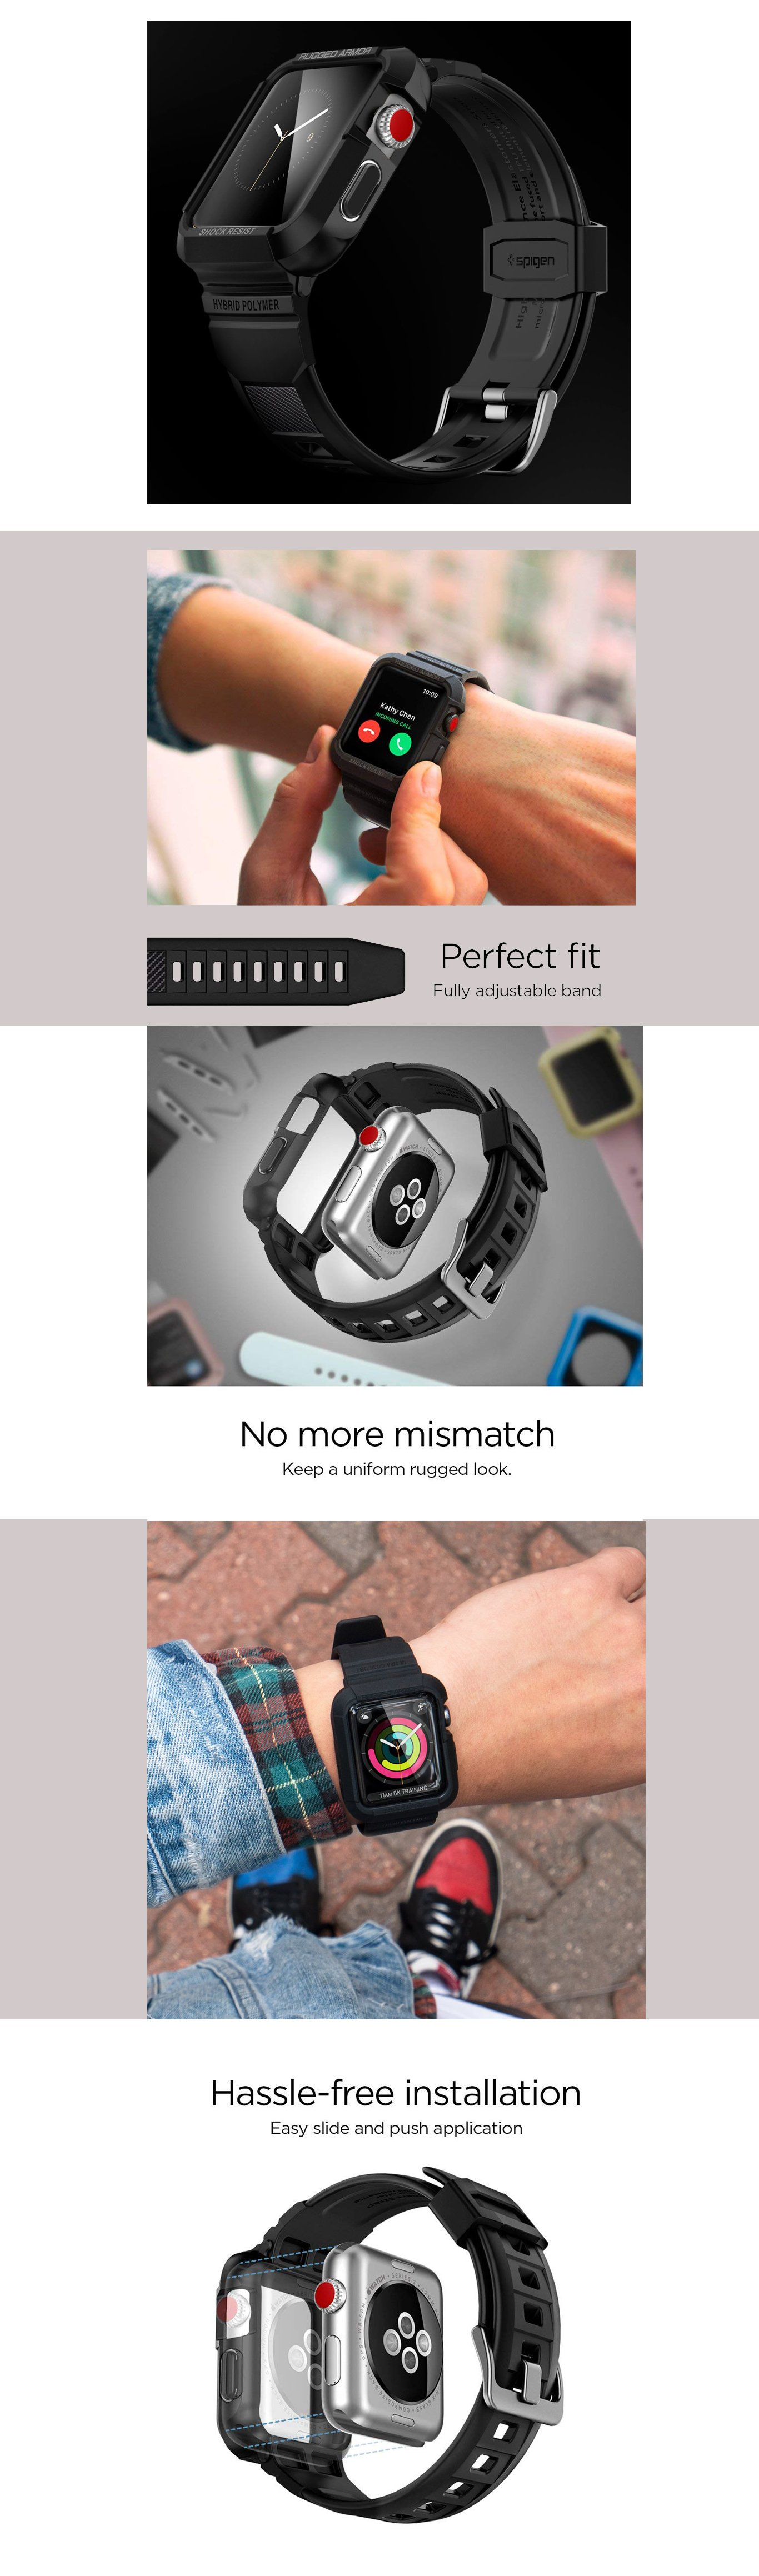 Spigen-rugged-armor-pro-apple-watch-series-4-44mm-malaysia-authorized-retailer-forexengineer-store-overview